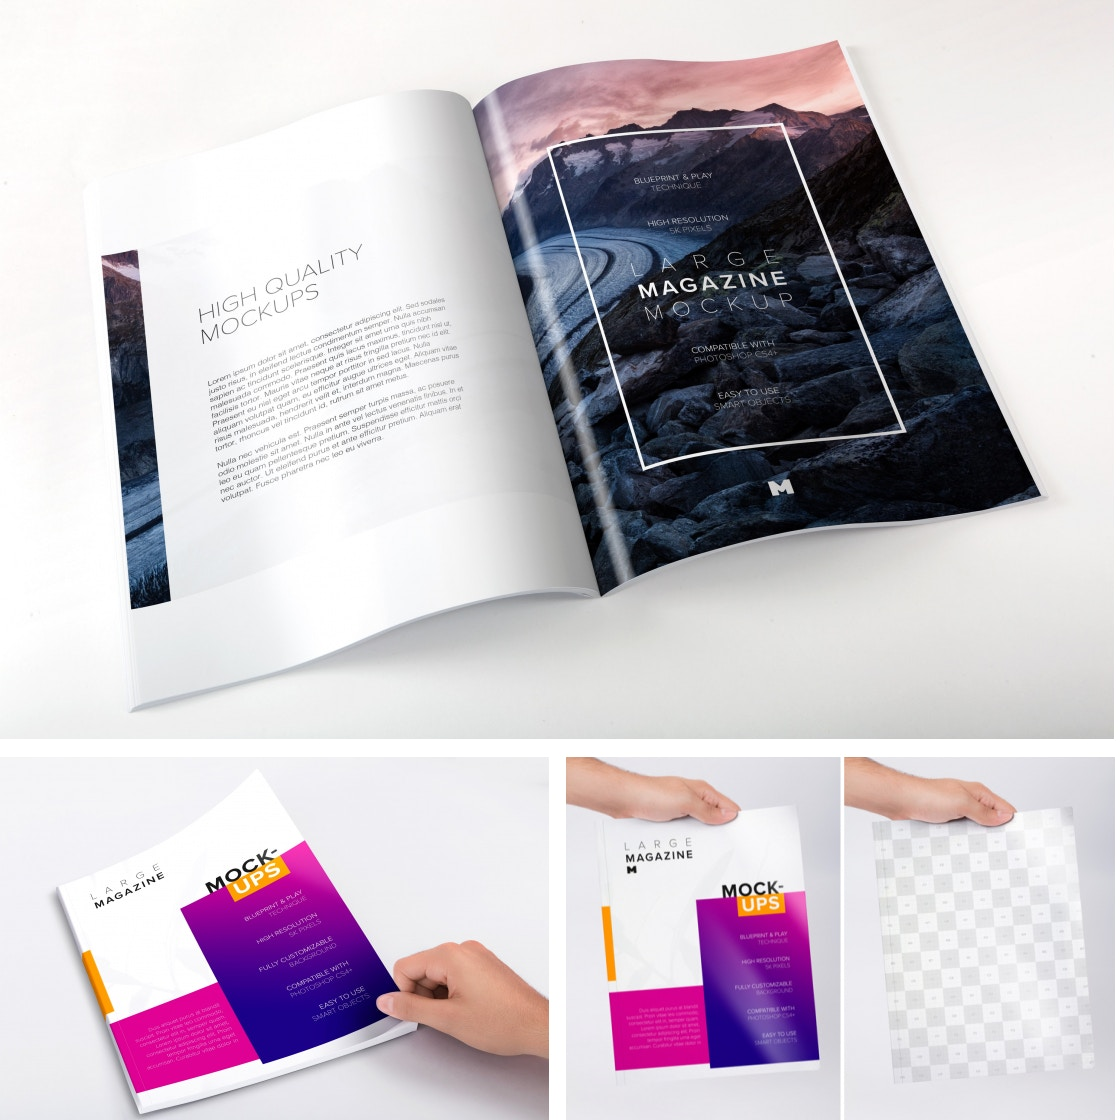 Large Magazine Mockups by Original Mockups on Original Mockups